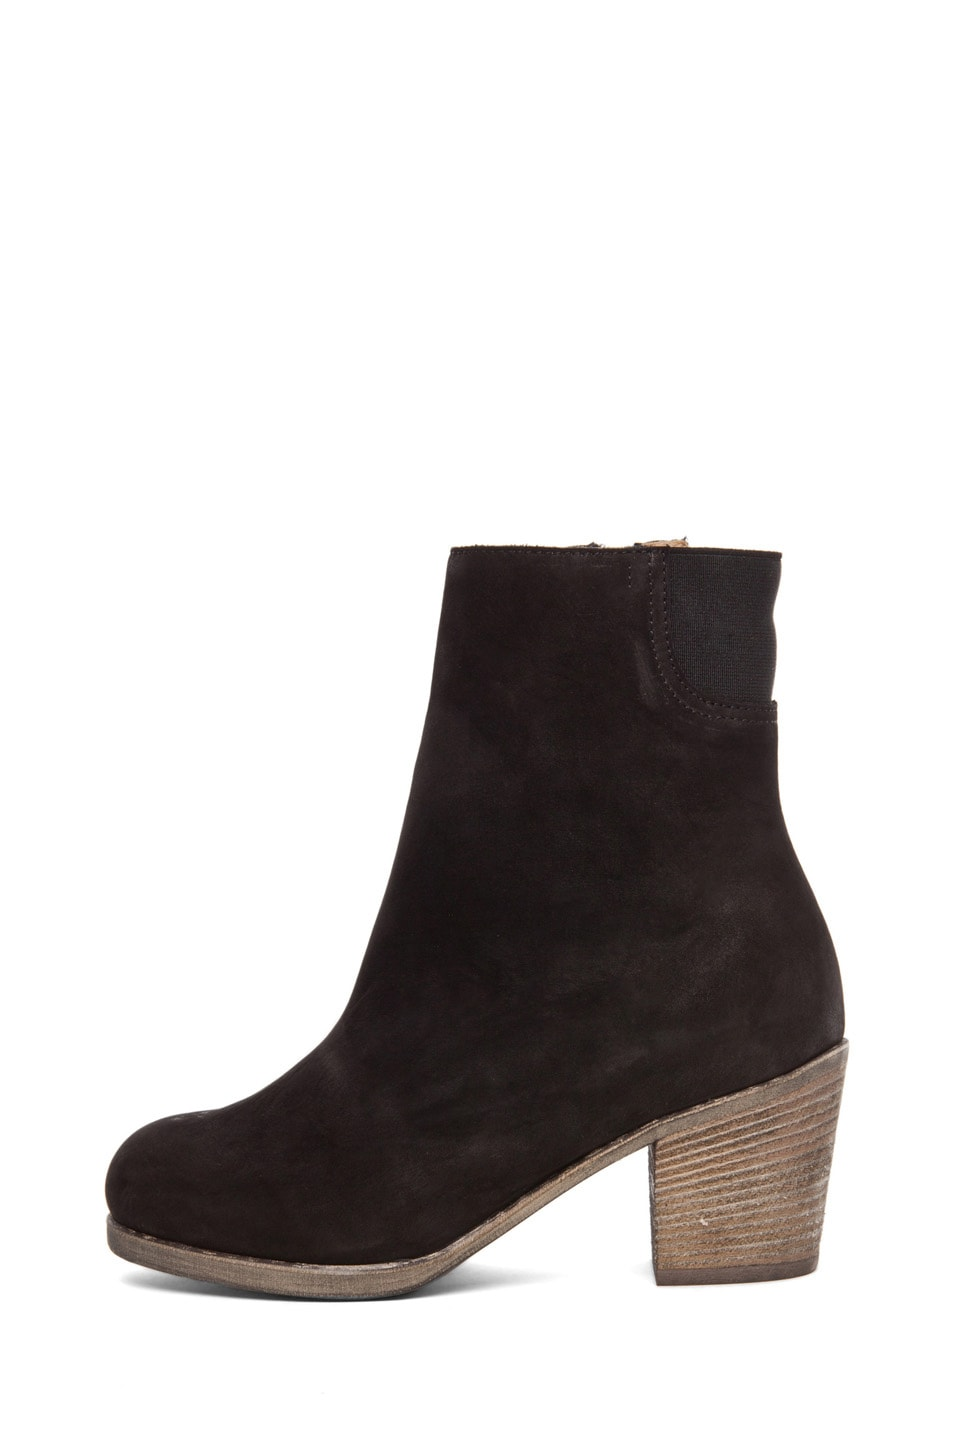 Image 1 of MM6 Maison Margiela Leather Bootie in Black